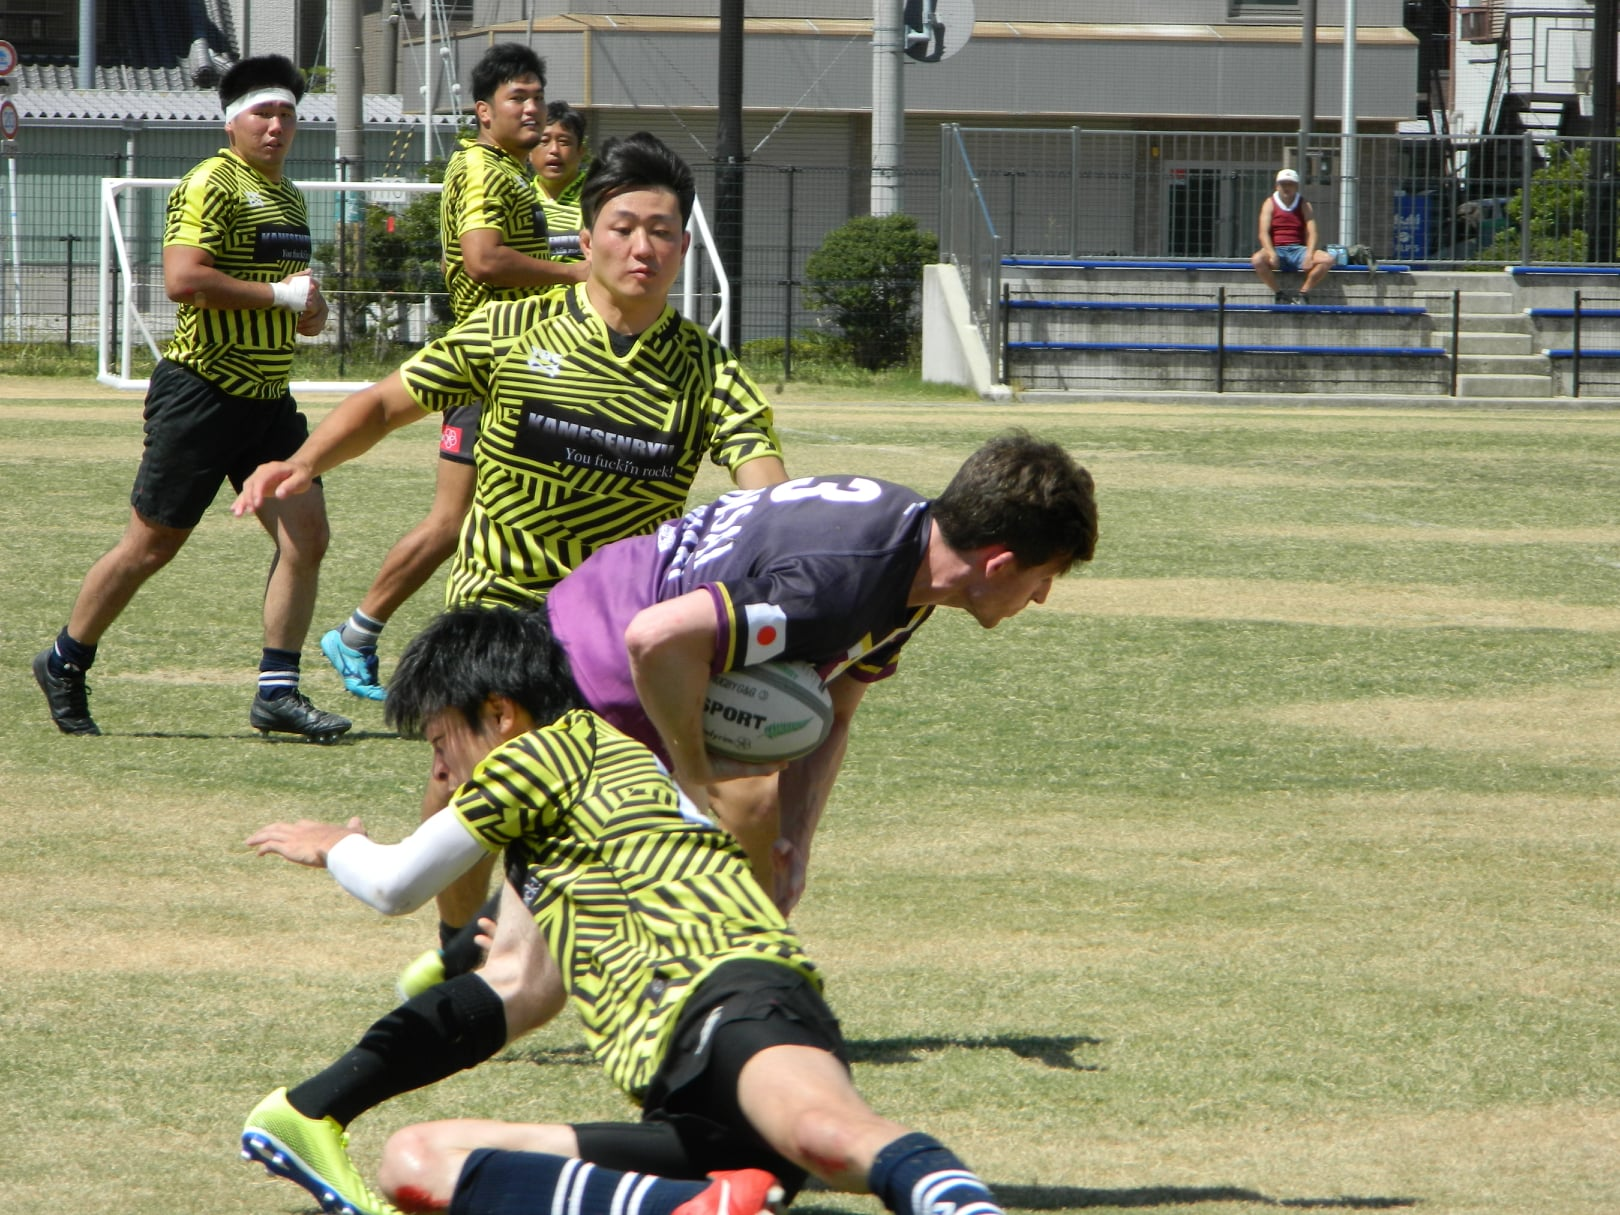 Kamisenryu Sea Turtles and Mitaka Spartans to face off in Japanese National Cup Grand Final